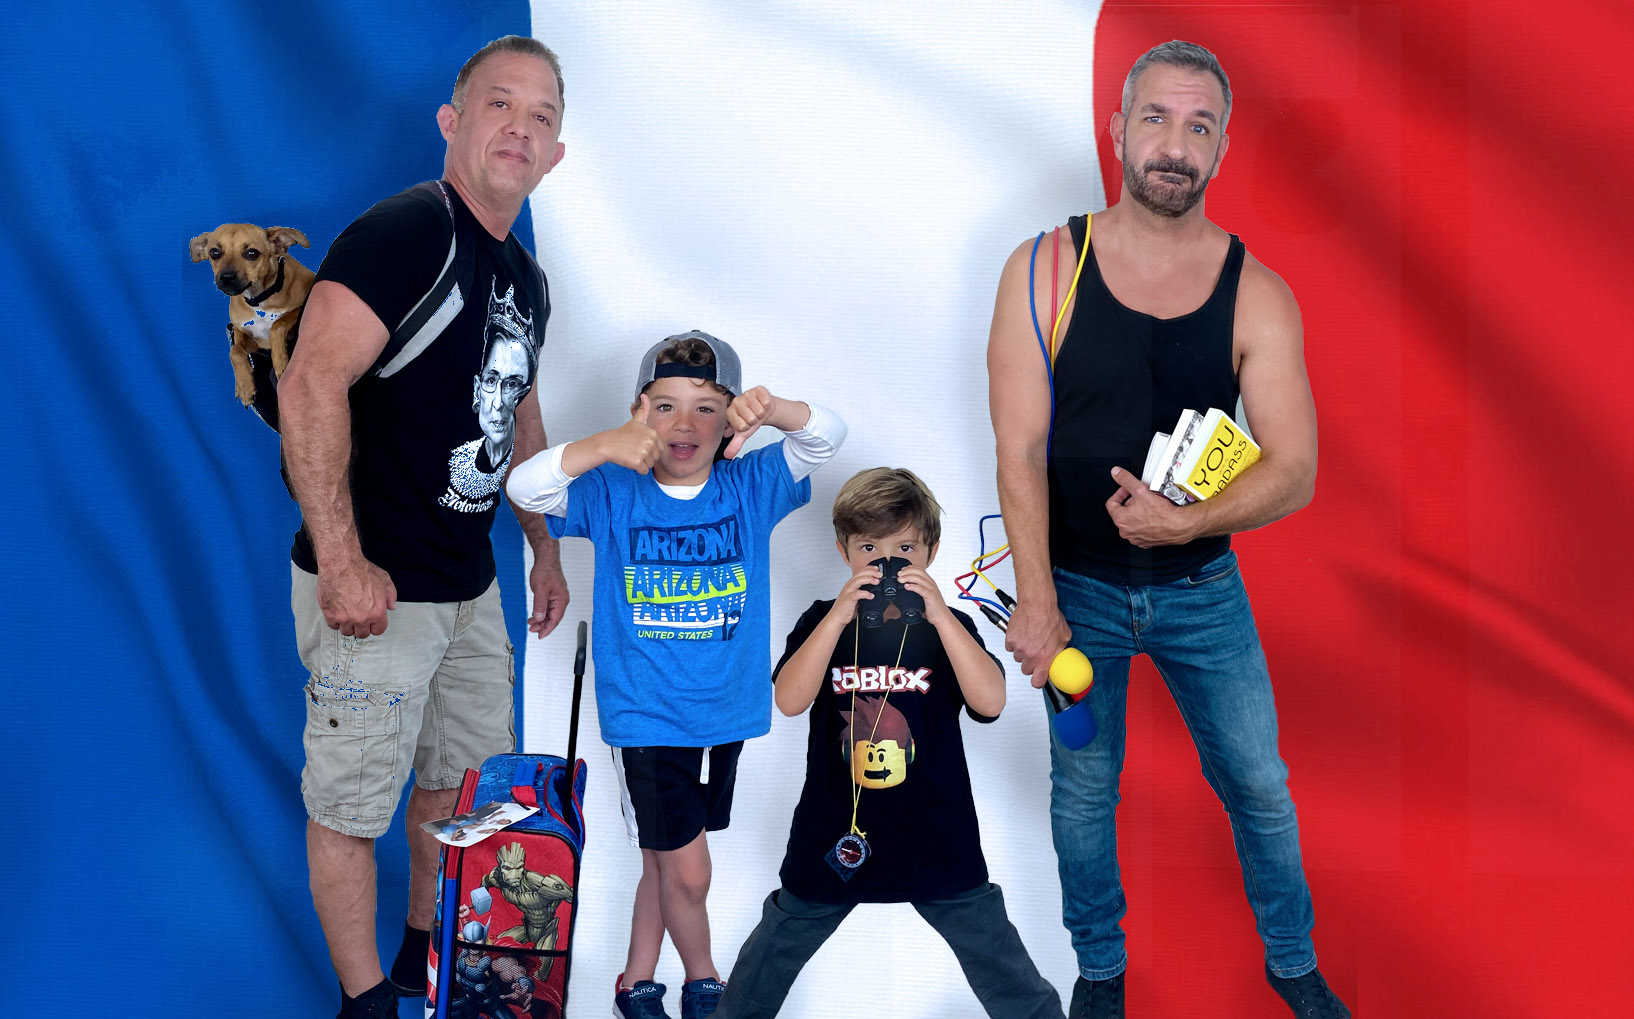 Daddy Squared Around The World: France